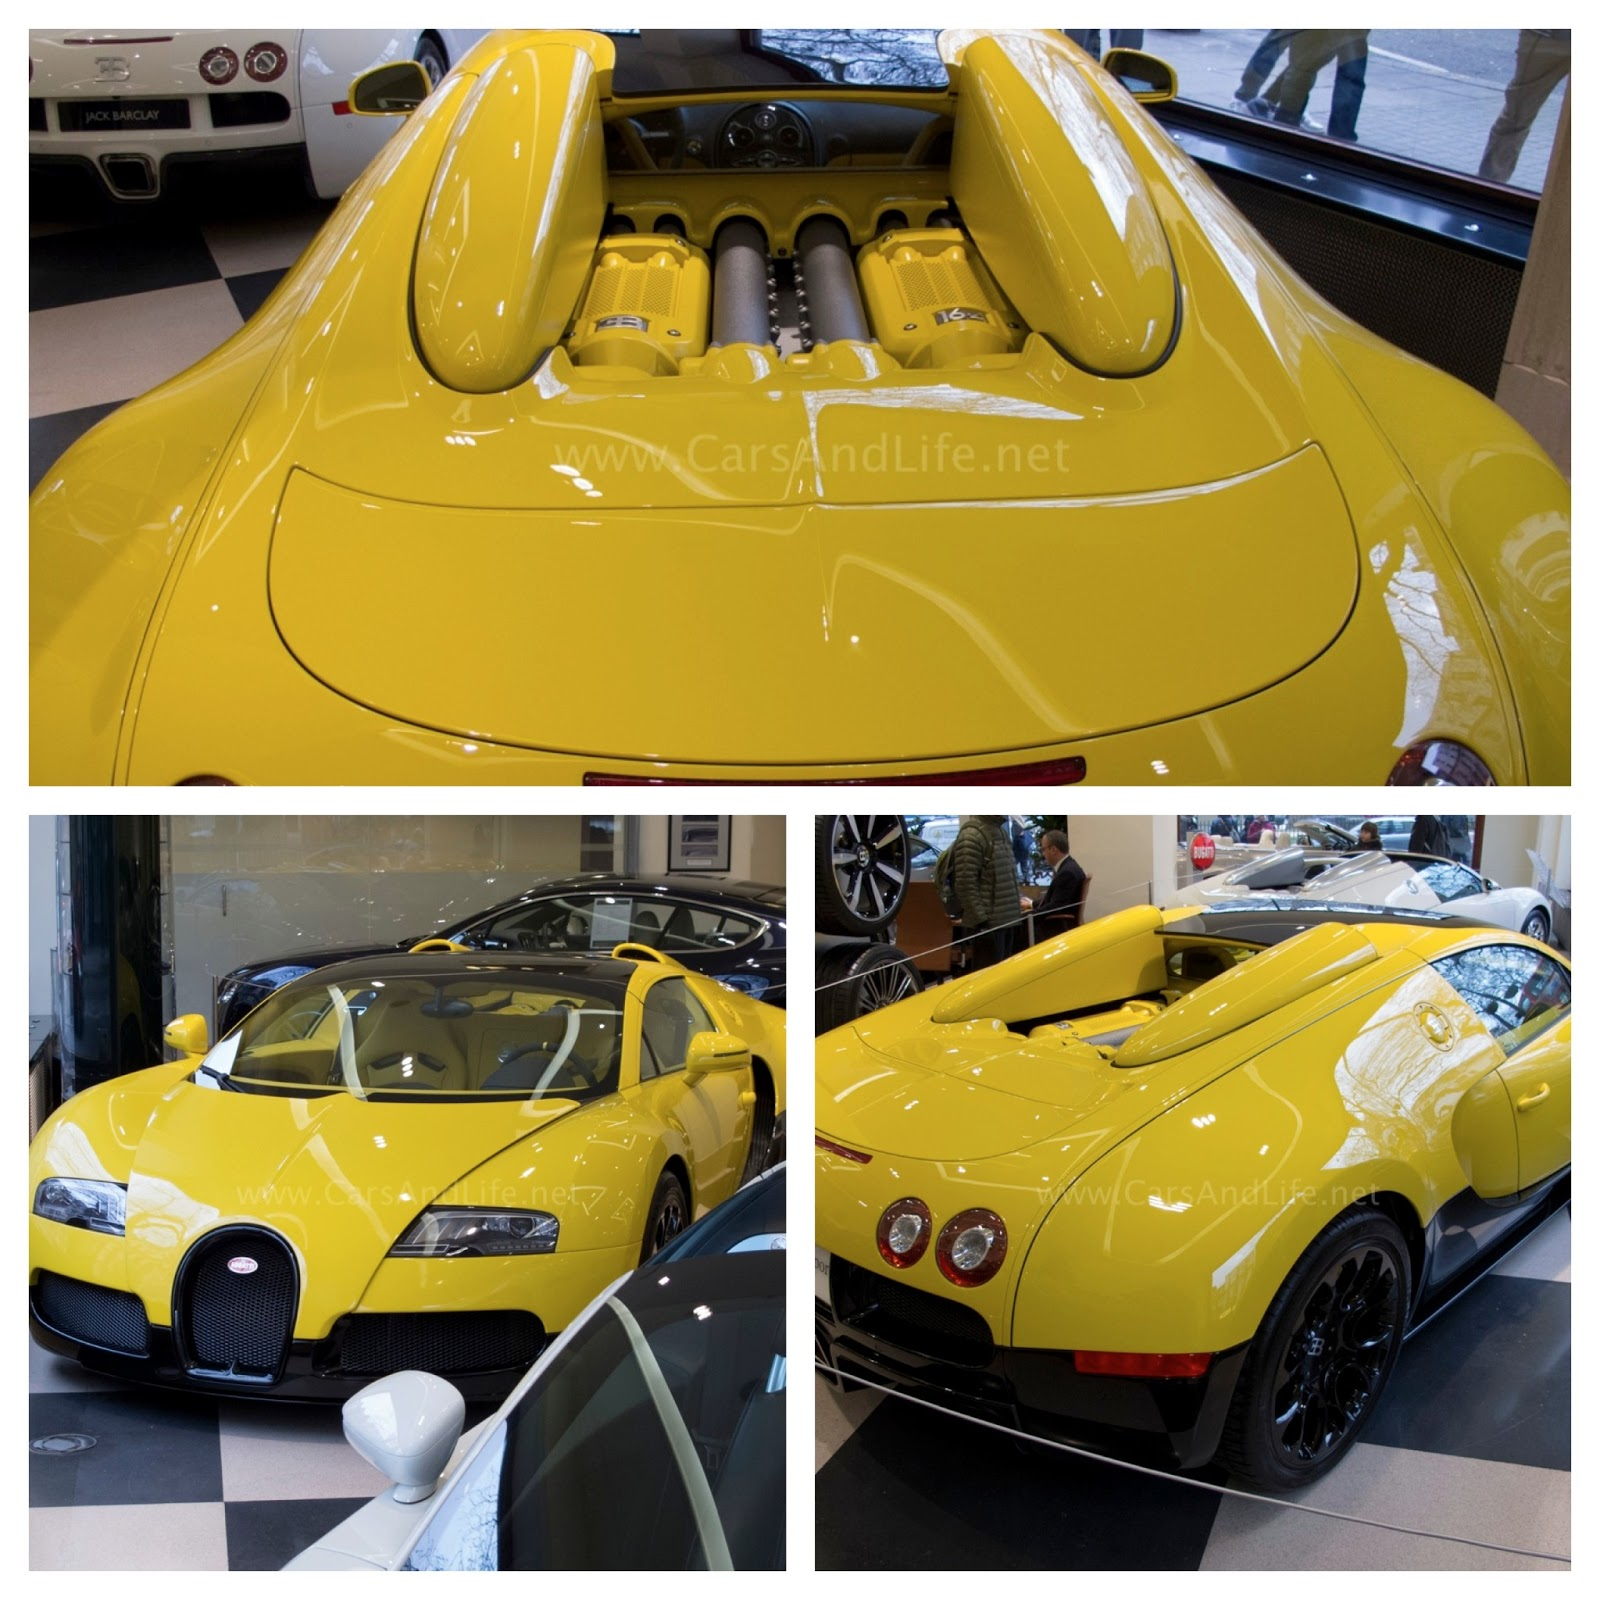 Bugatti Veyron Grand Sport 16.4 Open-Top